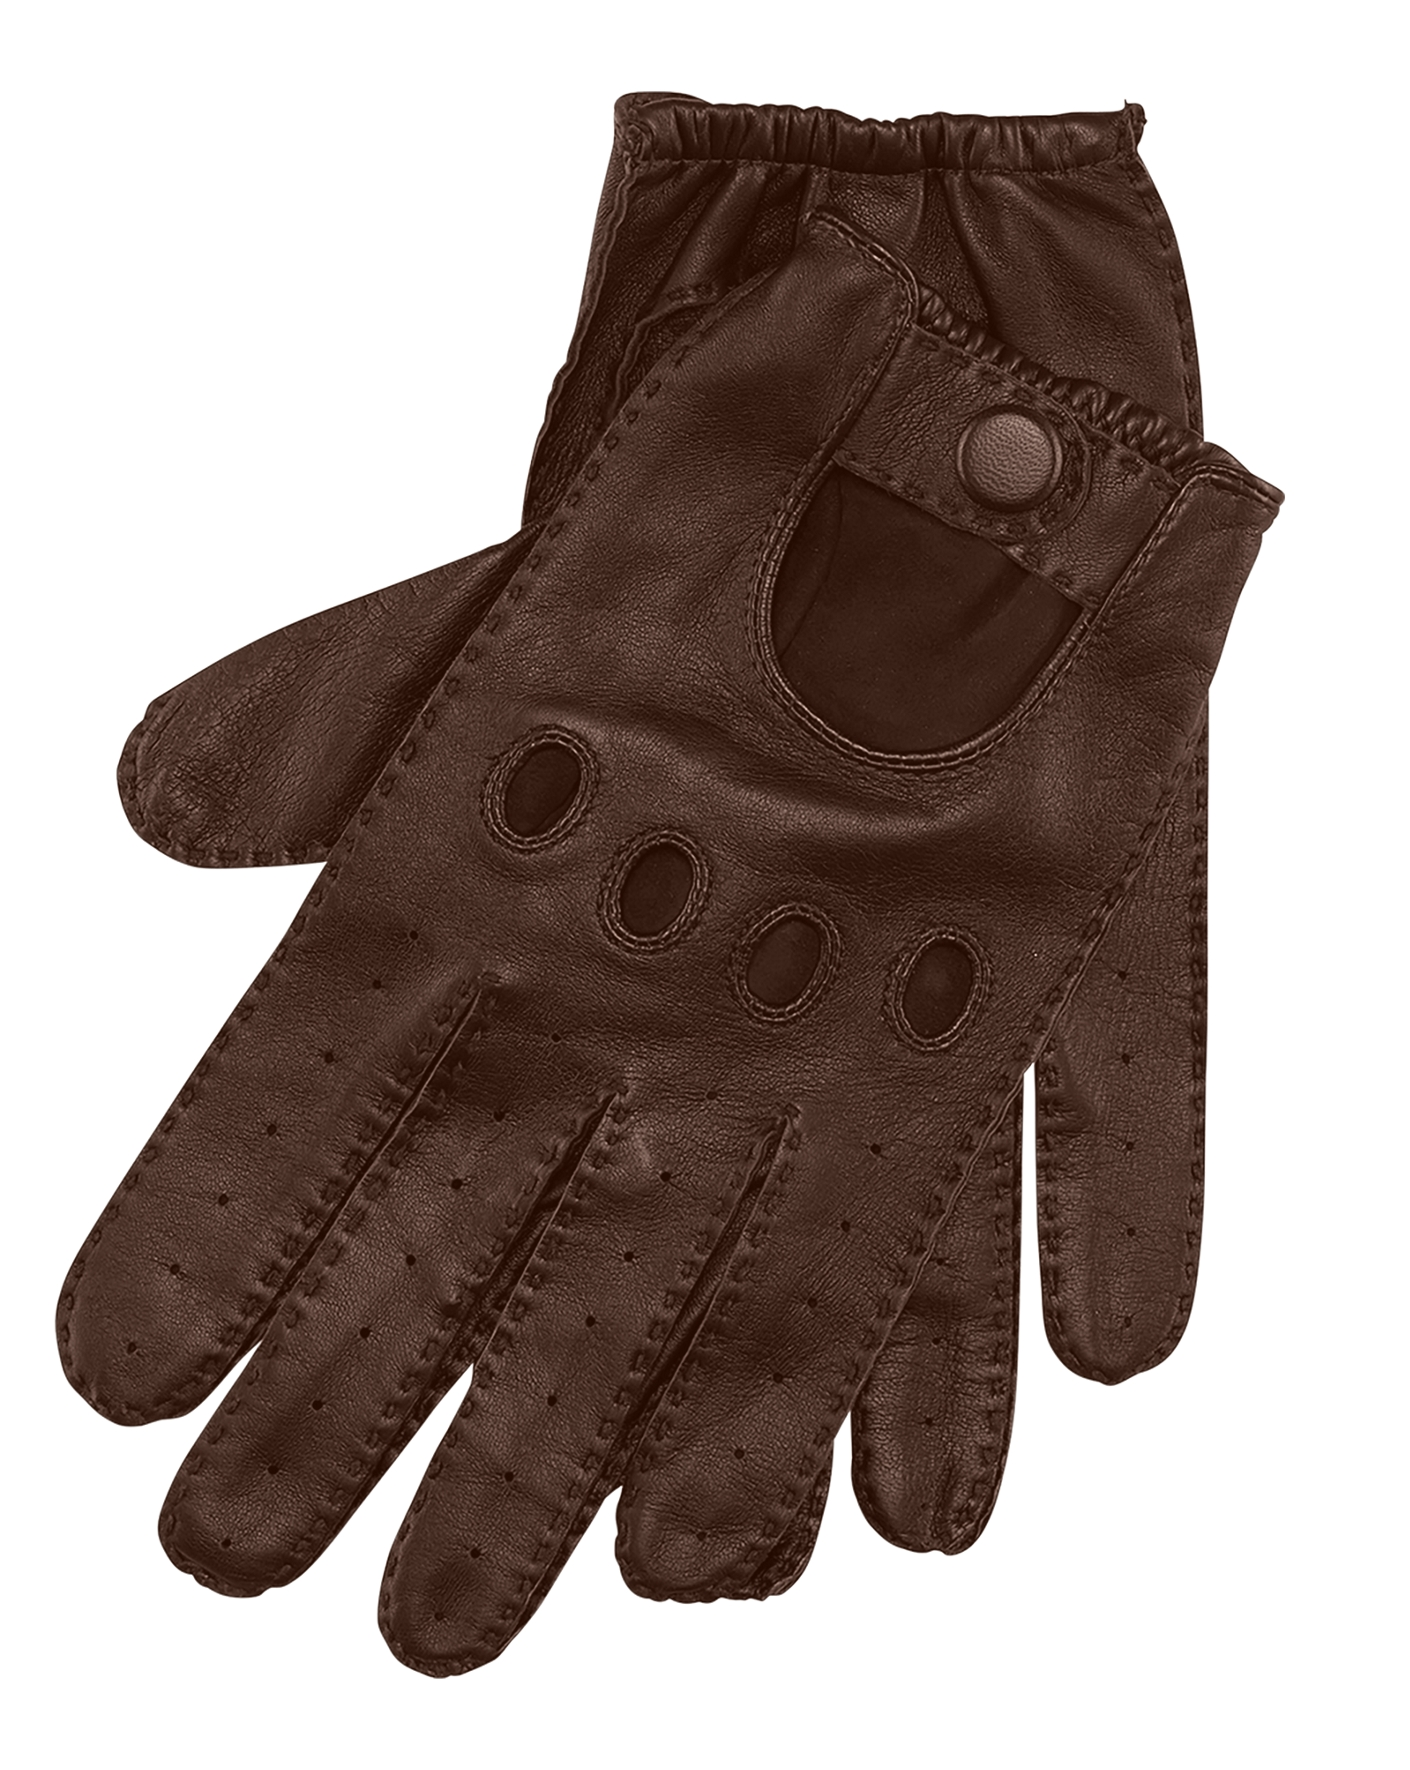 Blue leather gloves ladies uk - Leather Driving Gloves Polo Ralph Lauren Gloves Ralphlauren Com